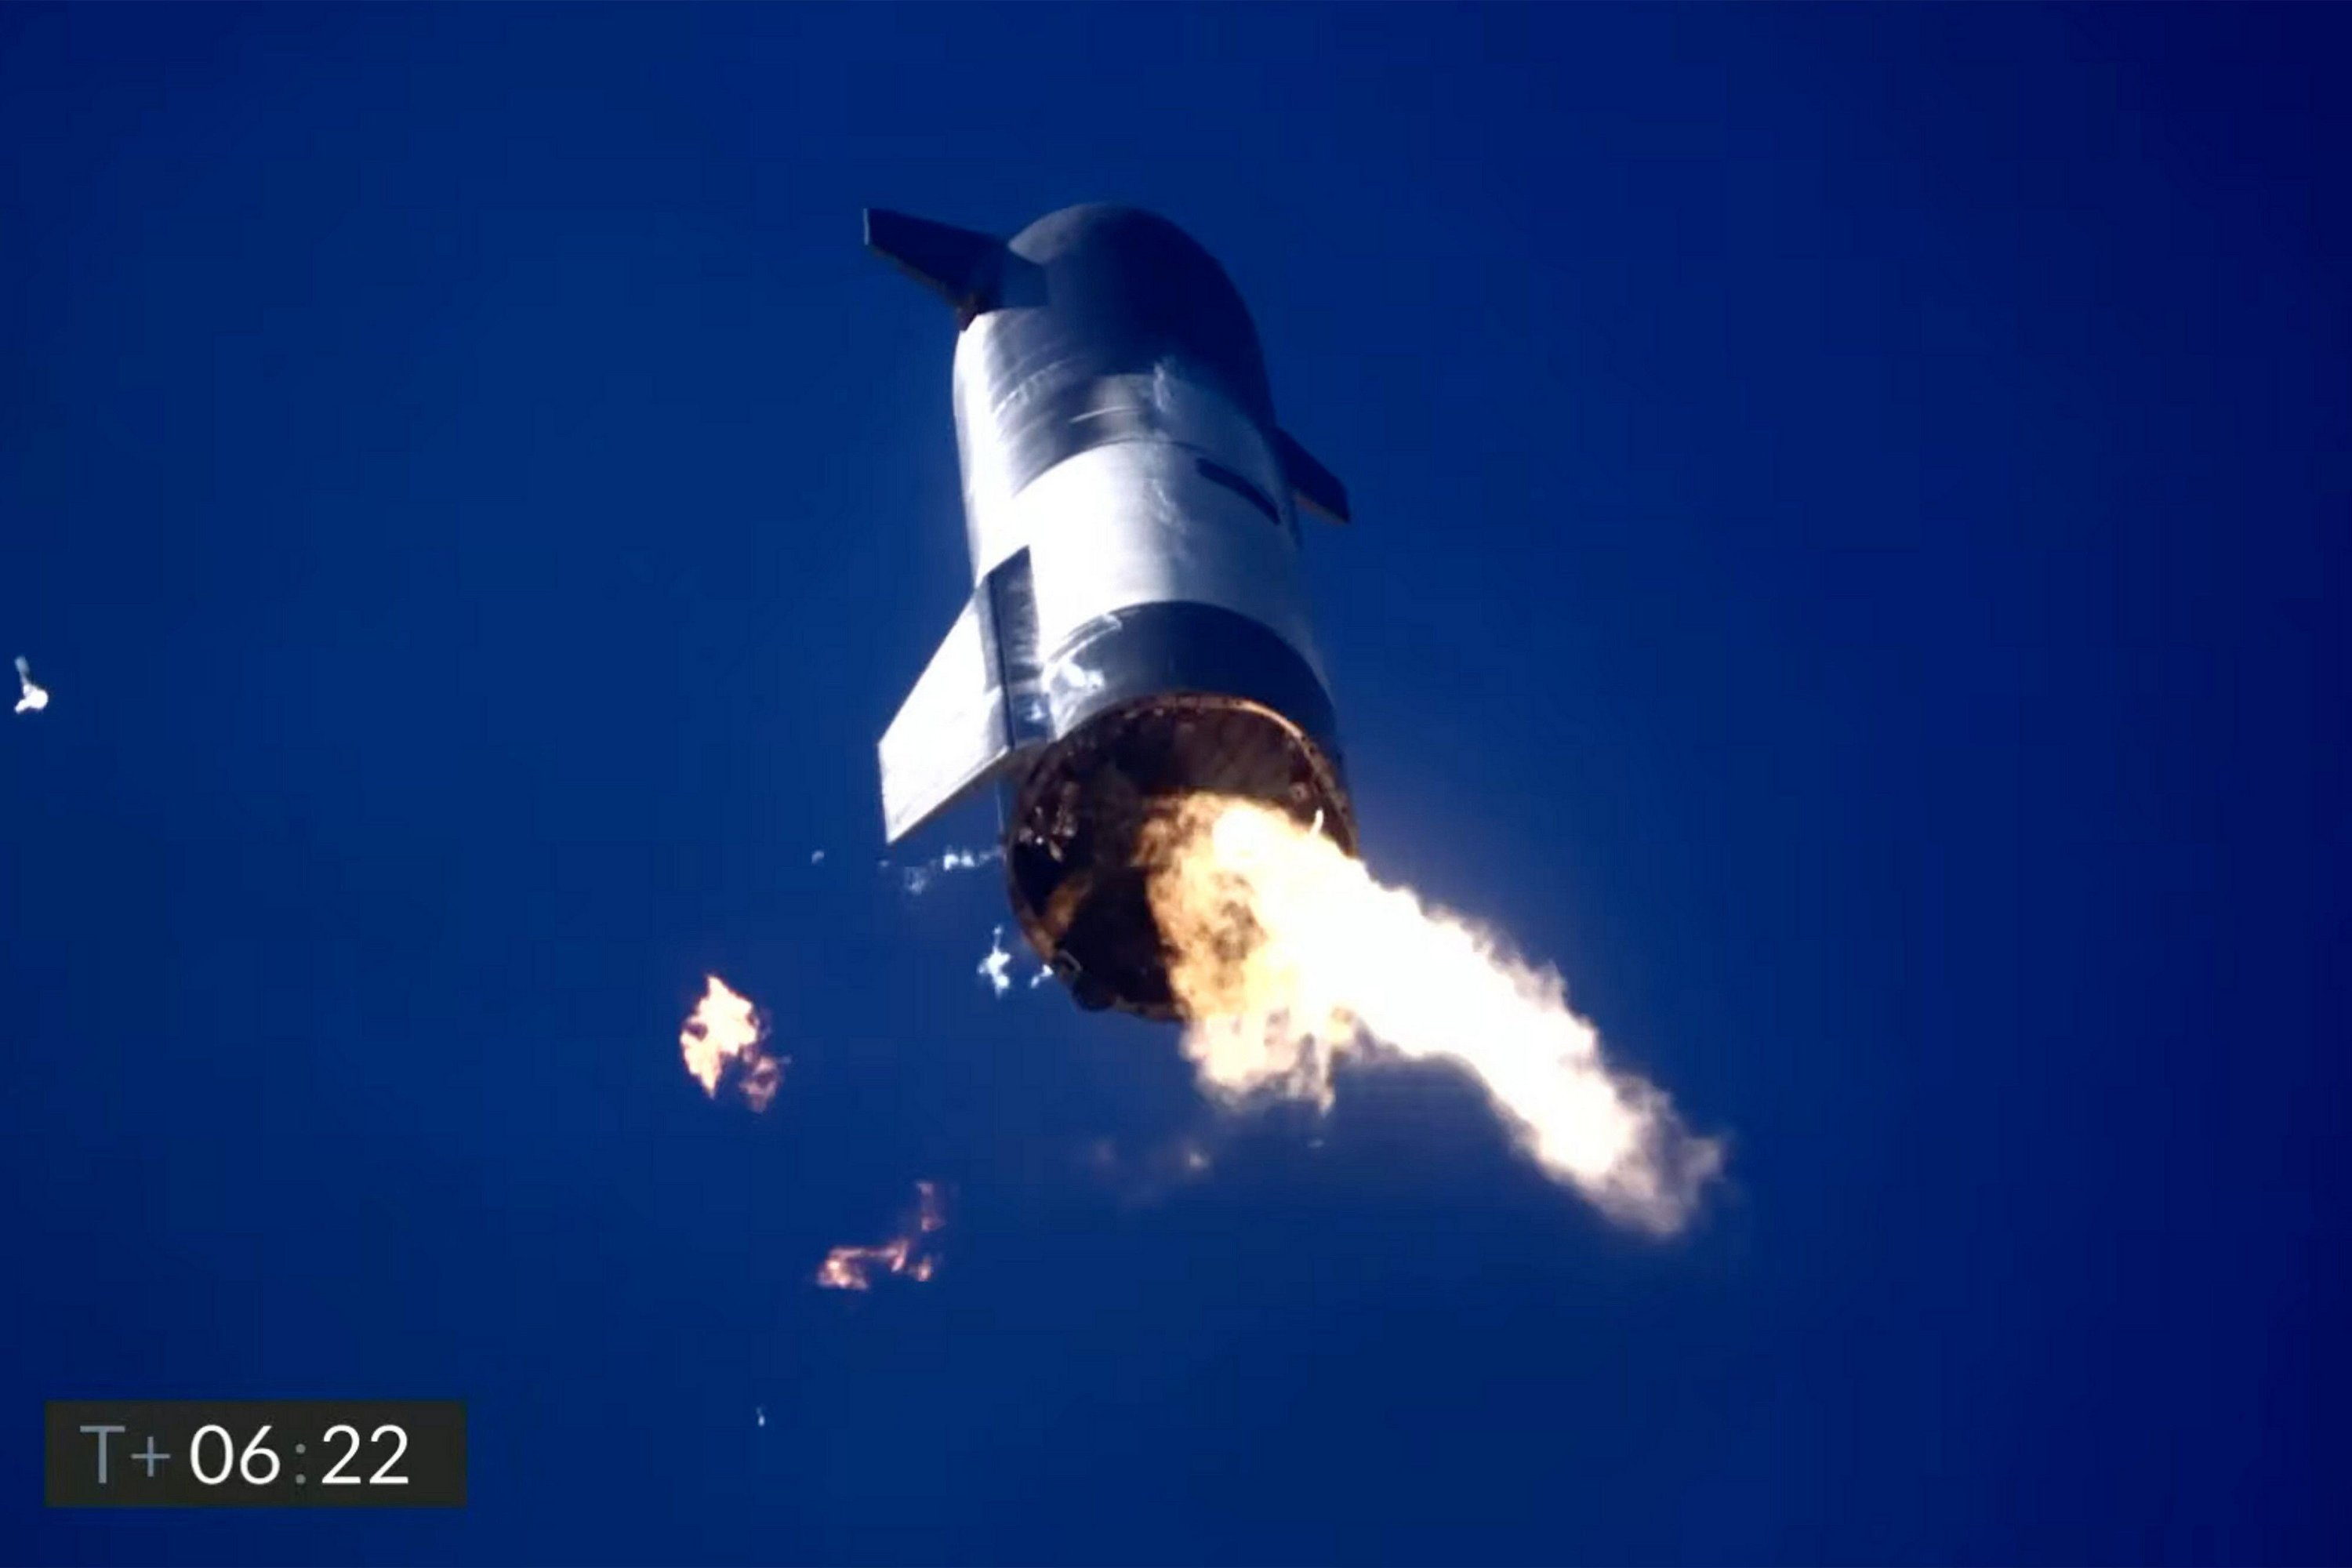 Previous Starship prototypes have exploded on landing